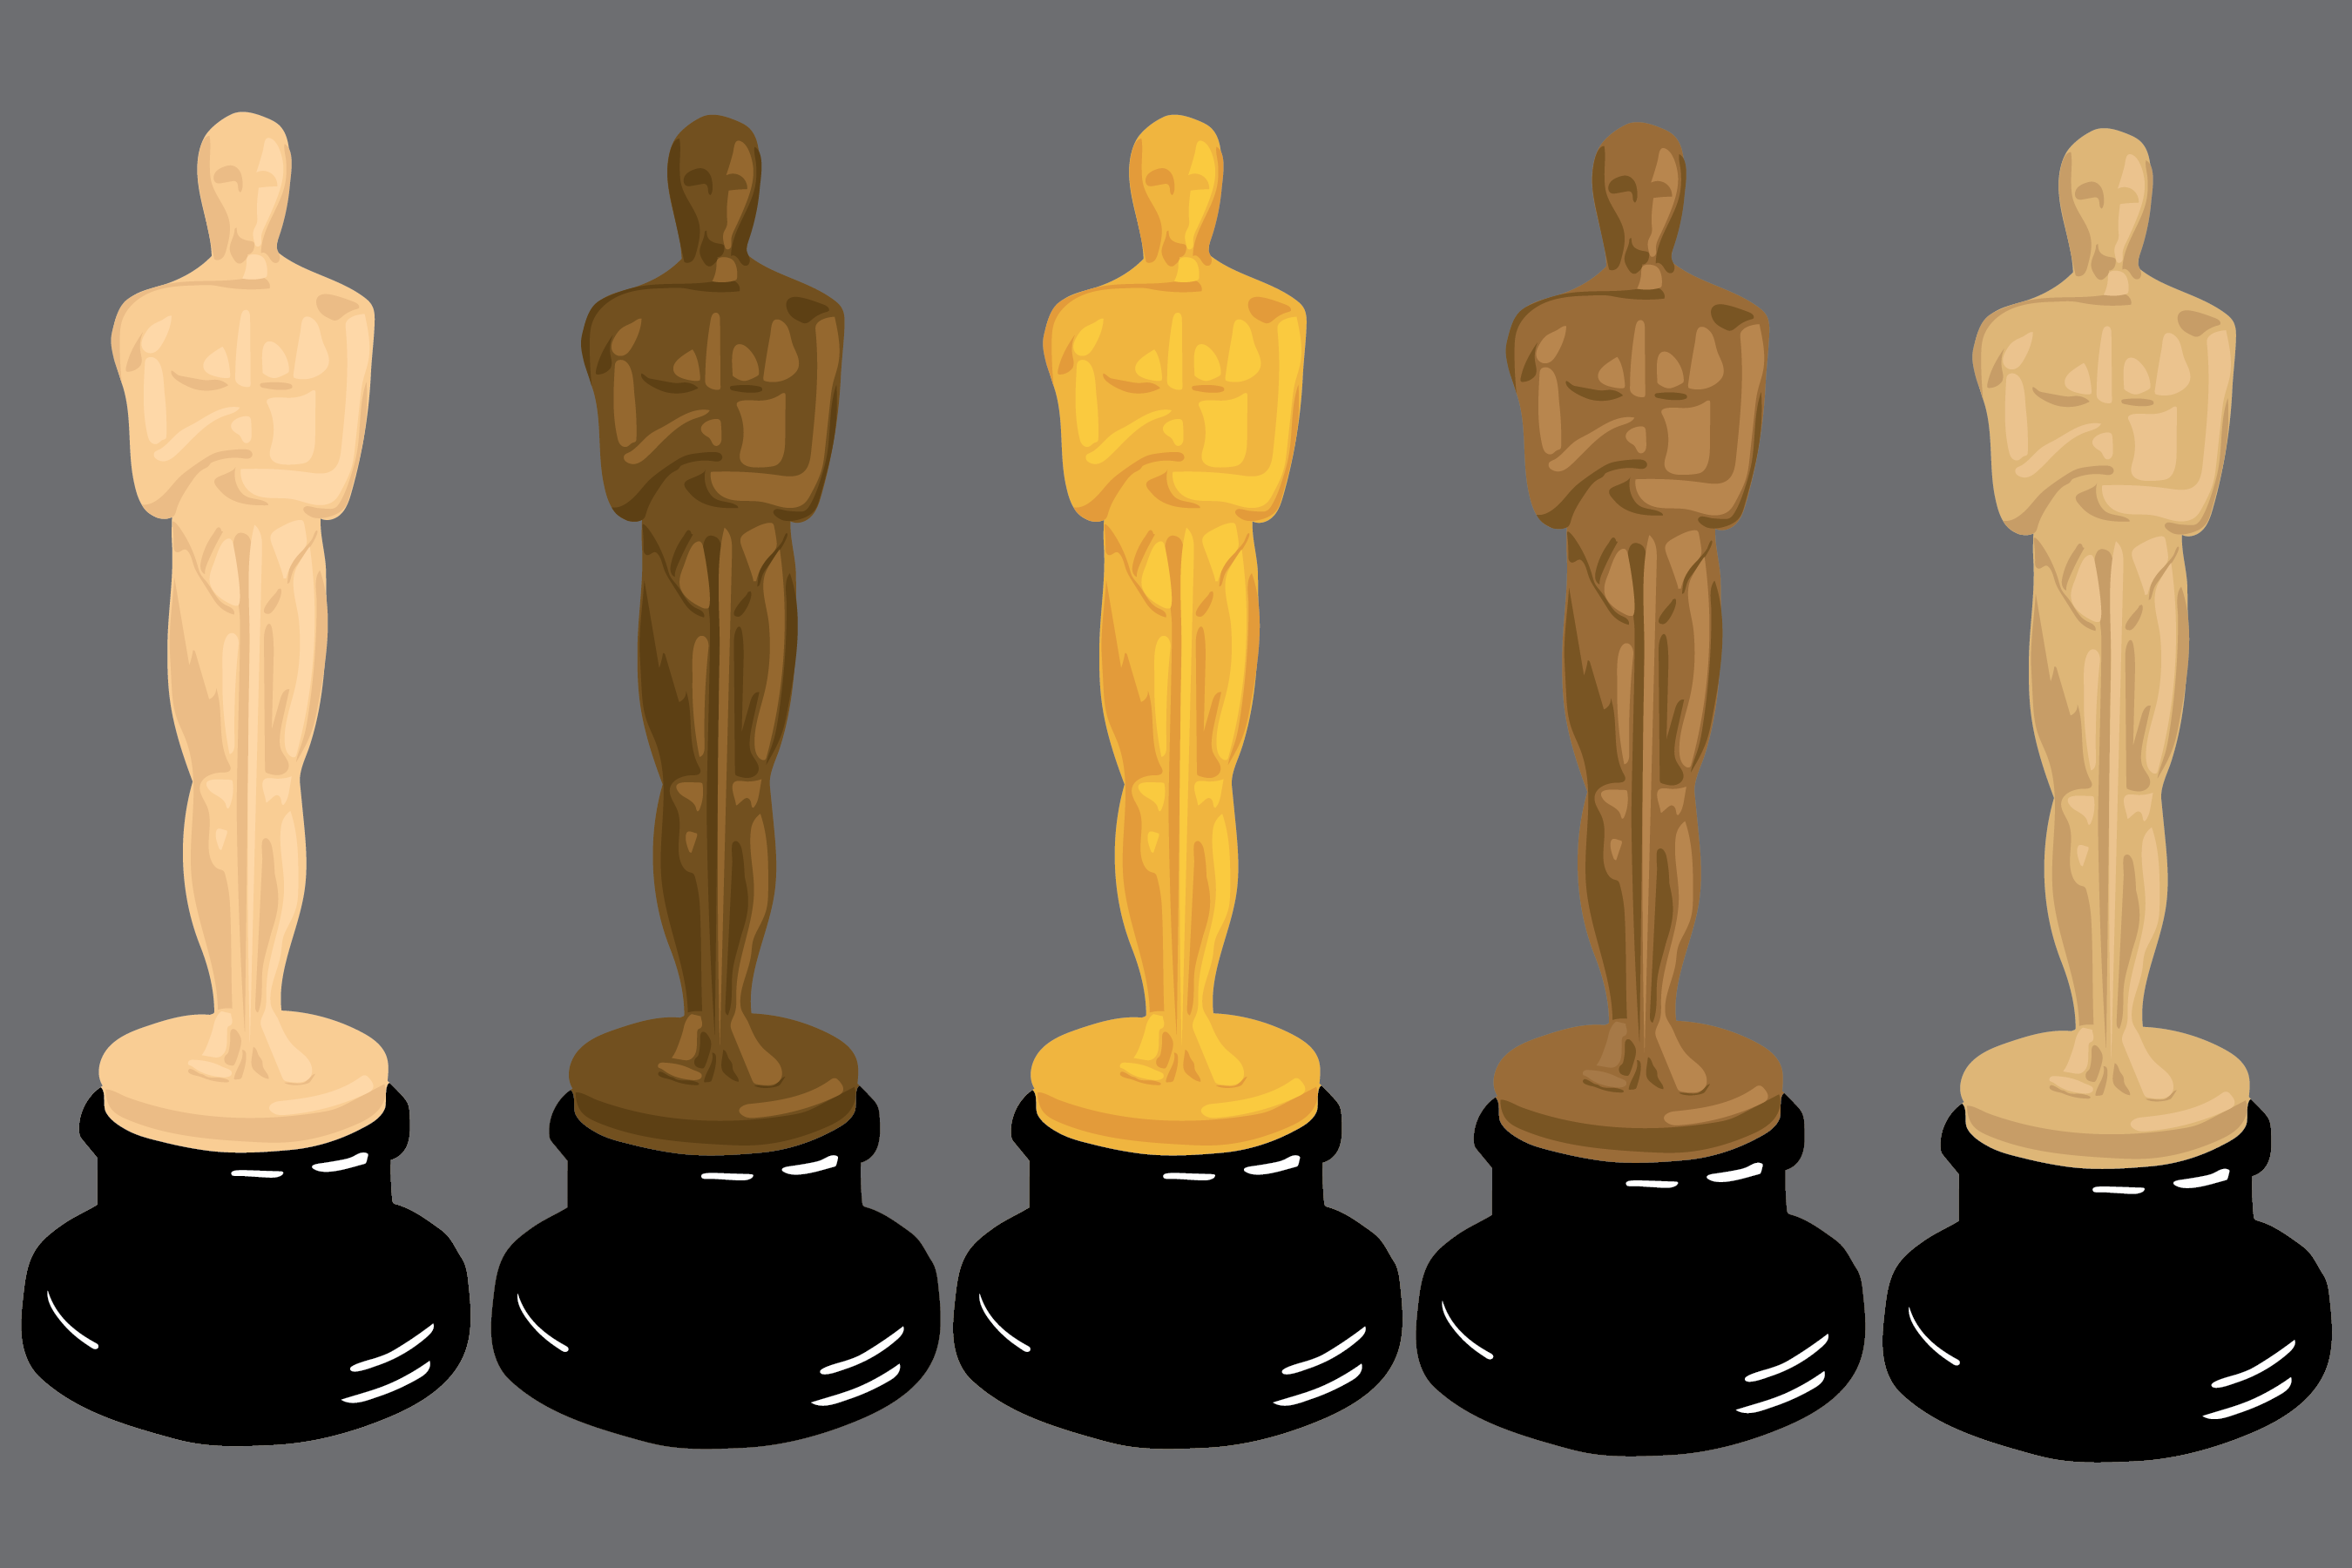 The 89th annual Oscars was held on Feb. 26 at the Dolby Theatre in Hollywood to honor and celebrate the best films of 2016. This year's Academy Awards uniquely awarded a variety of actors, actresses and writers of color, embracing and promoting diversity in the film industry. Graphic by Elena Gillis